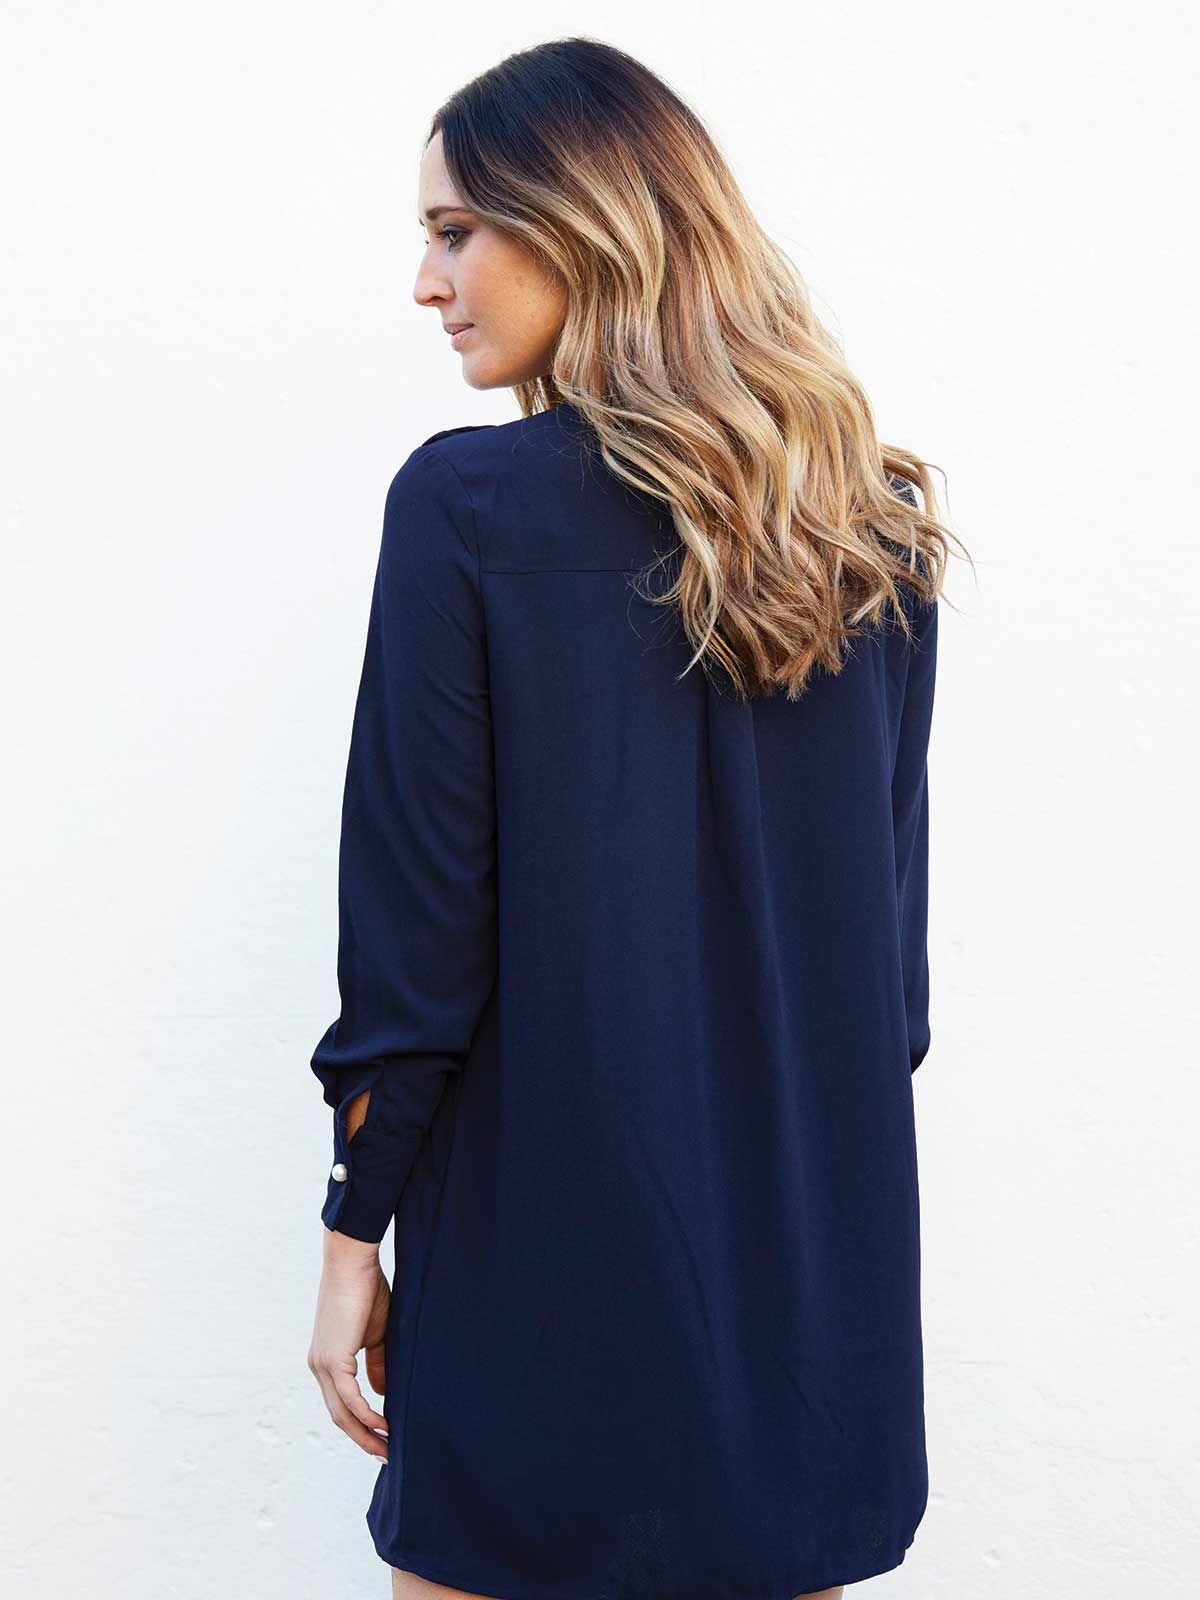 MOONLIGHT SHADOW NAVY SHIFT DRESS